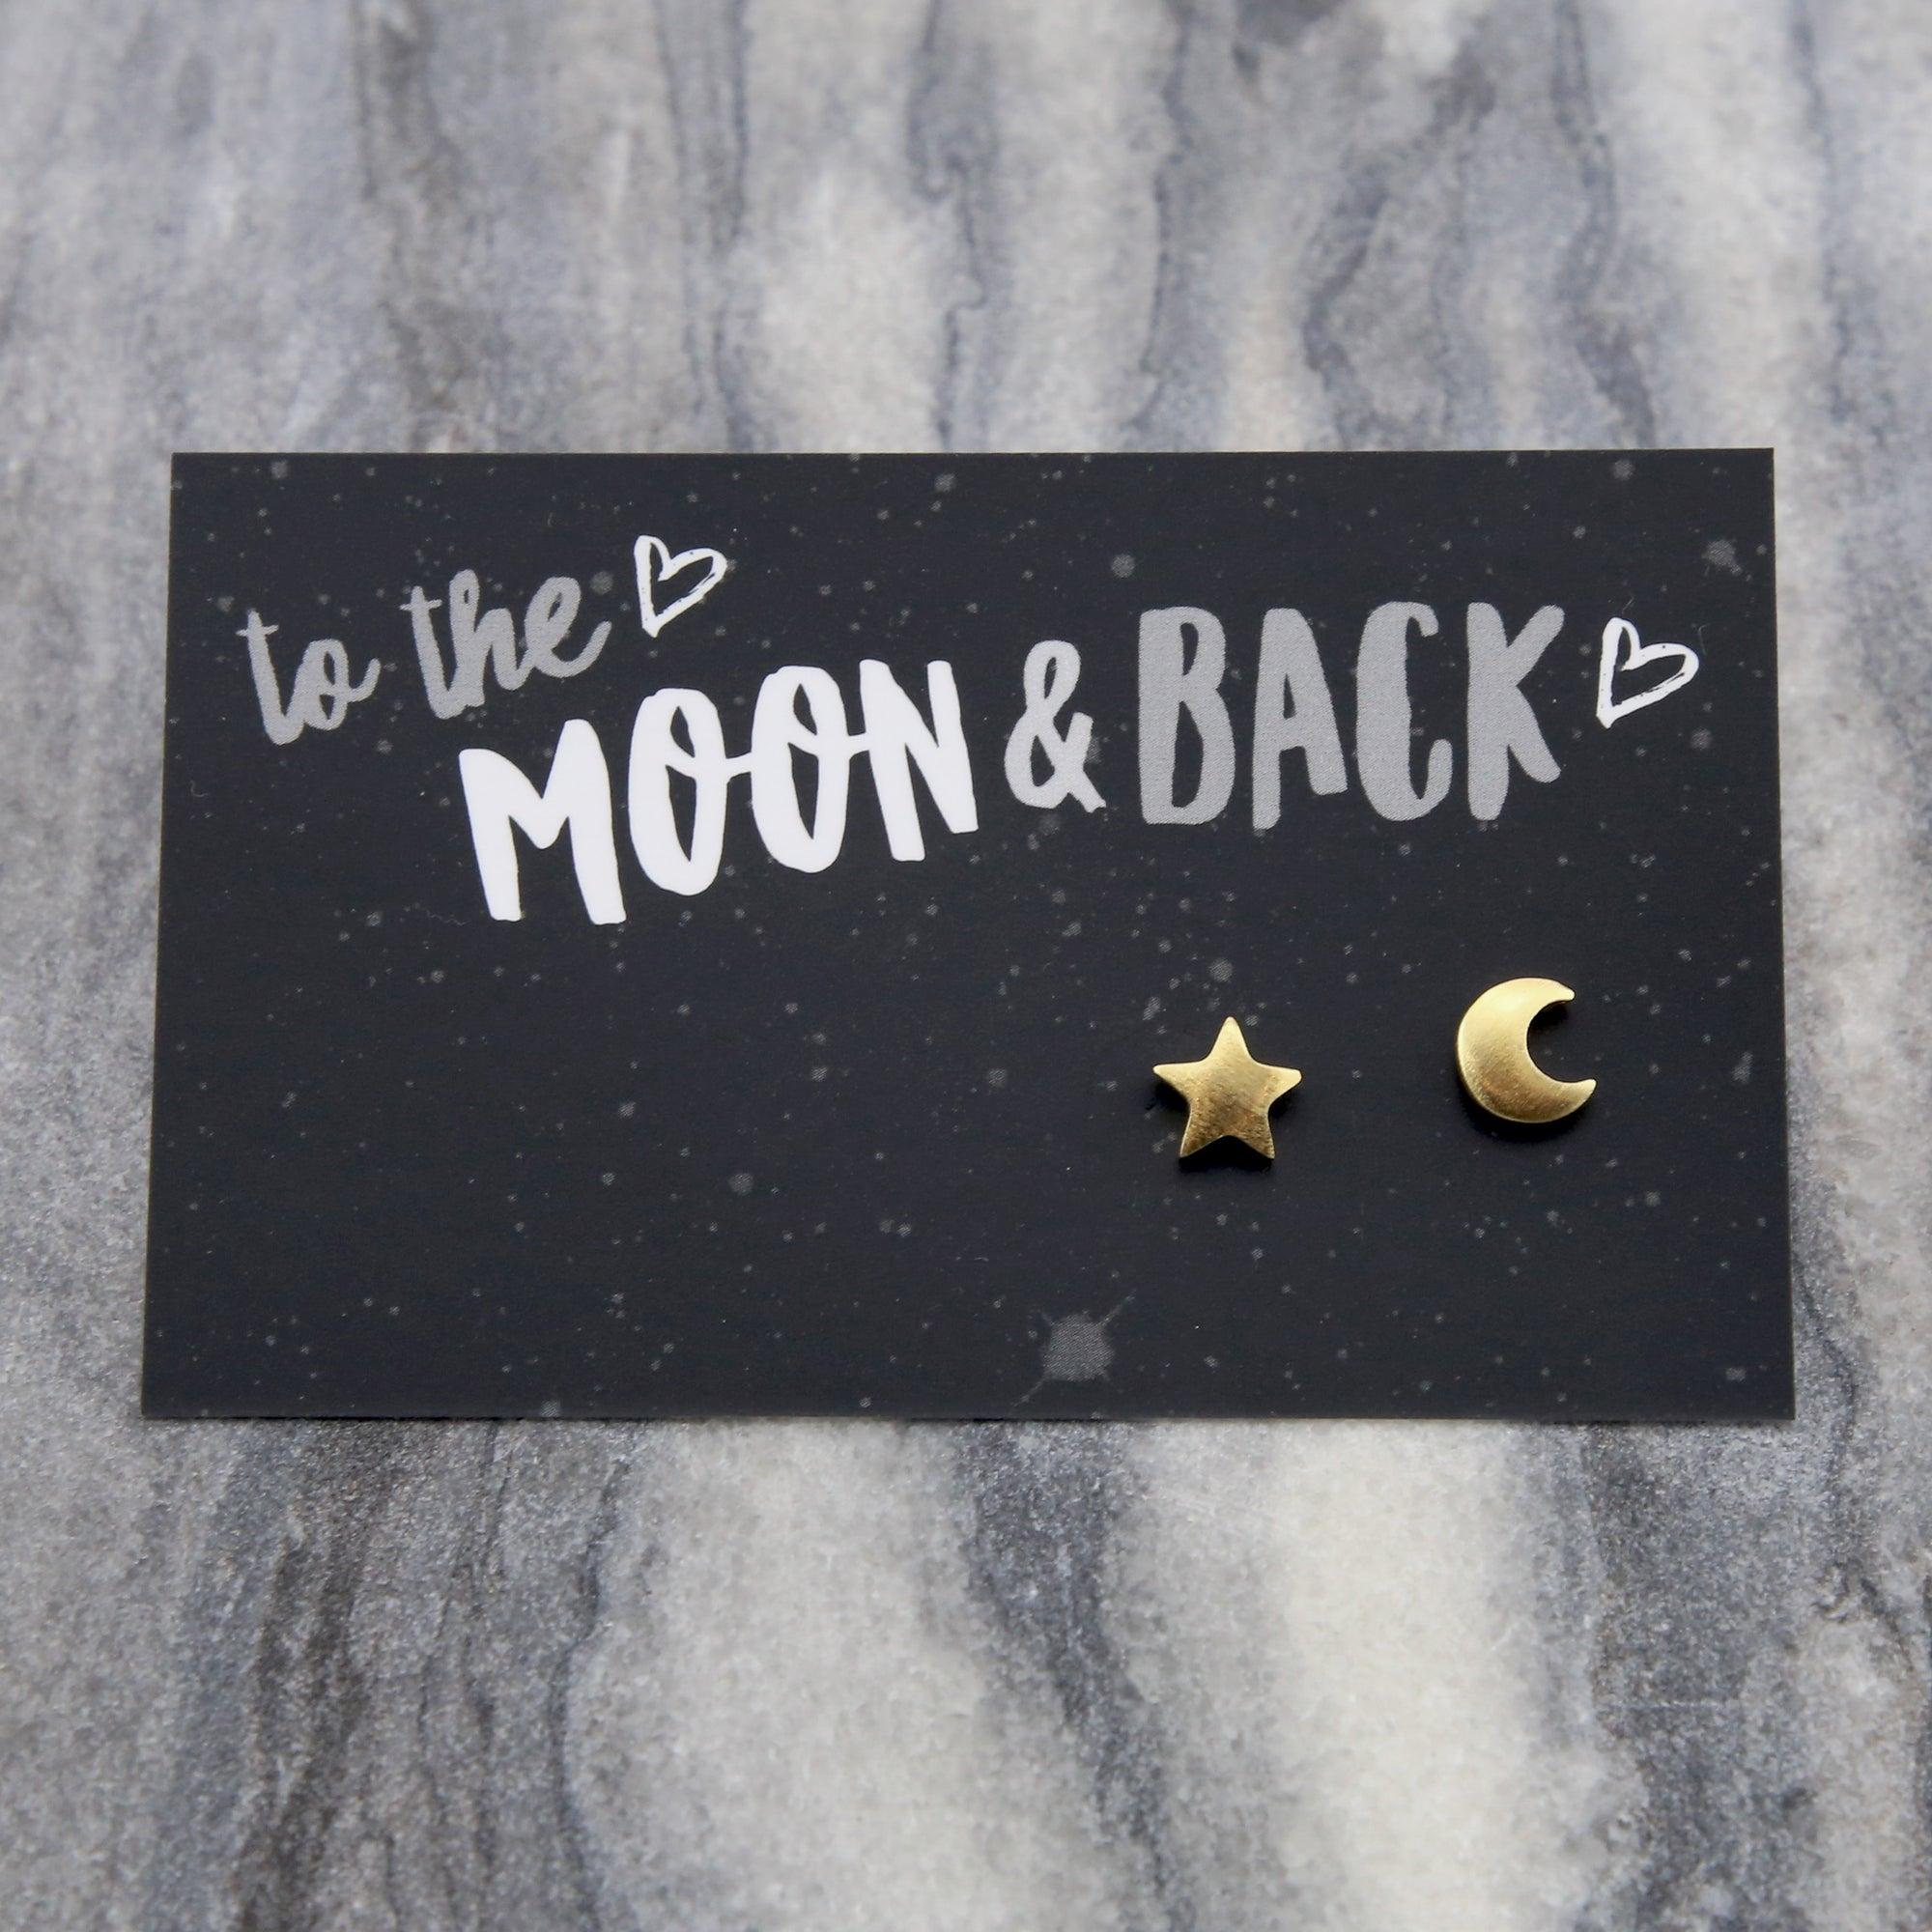 TO THE MOON & BACK - Plated Stud Earrings - Gold (9706)